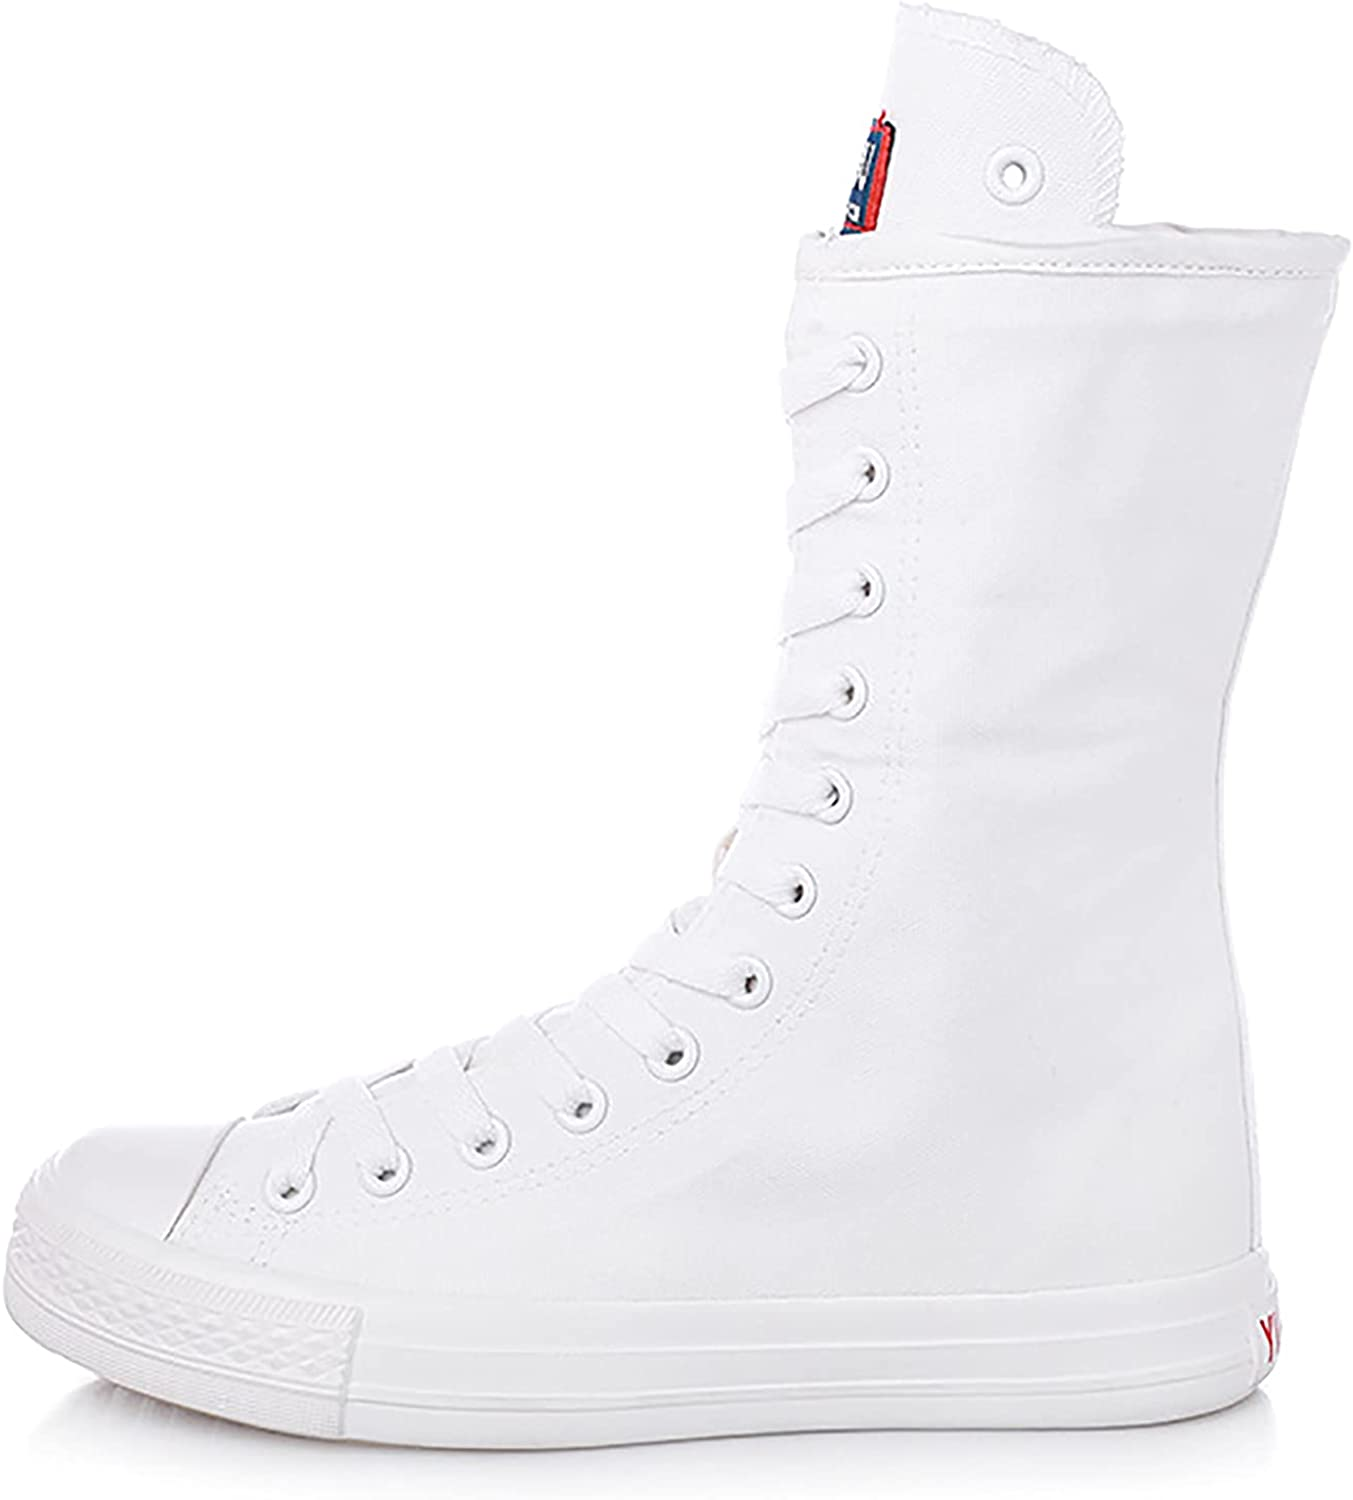 Womens Fashion Canvas Boots Mid Calf Lace Up Sneakers Causal School Shoes